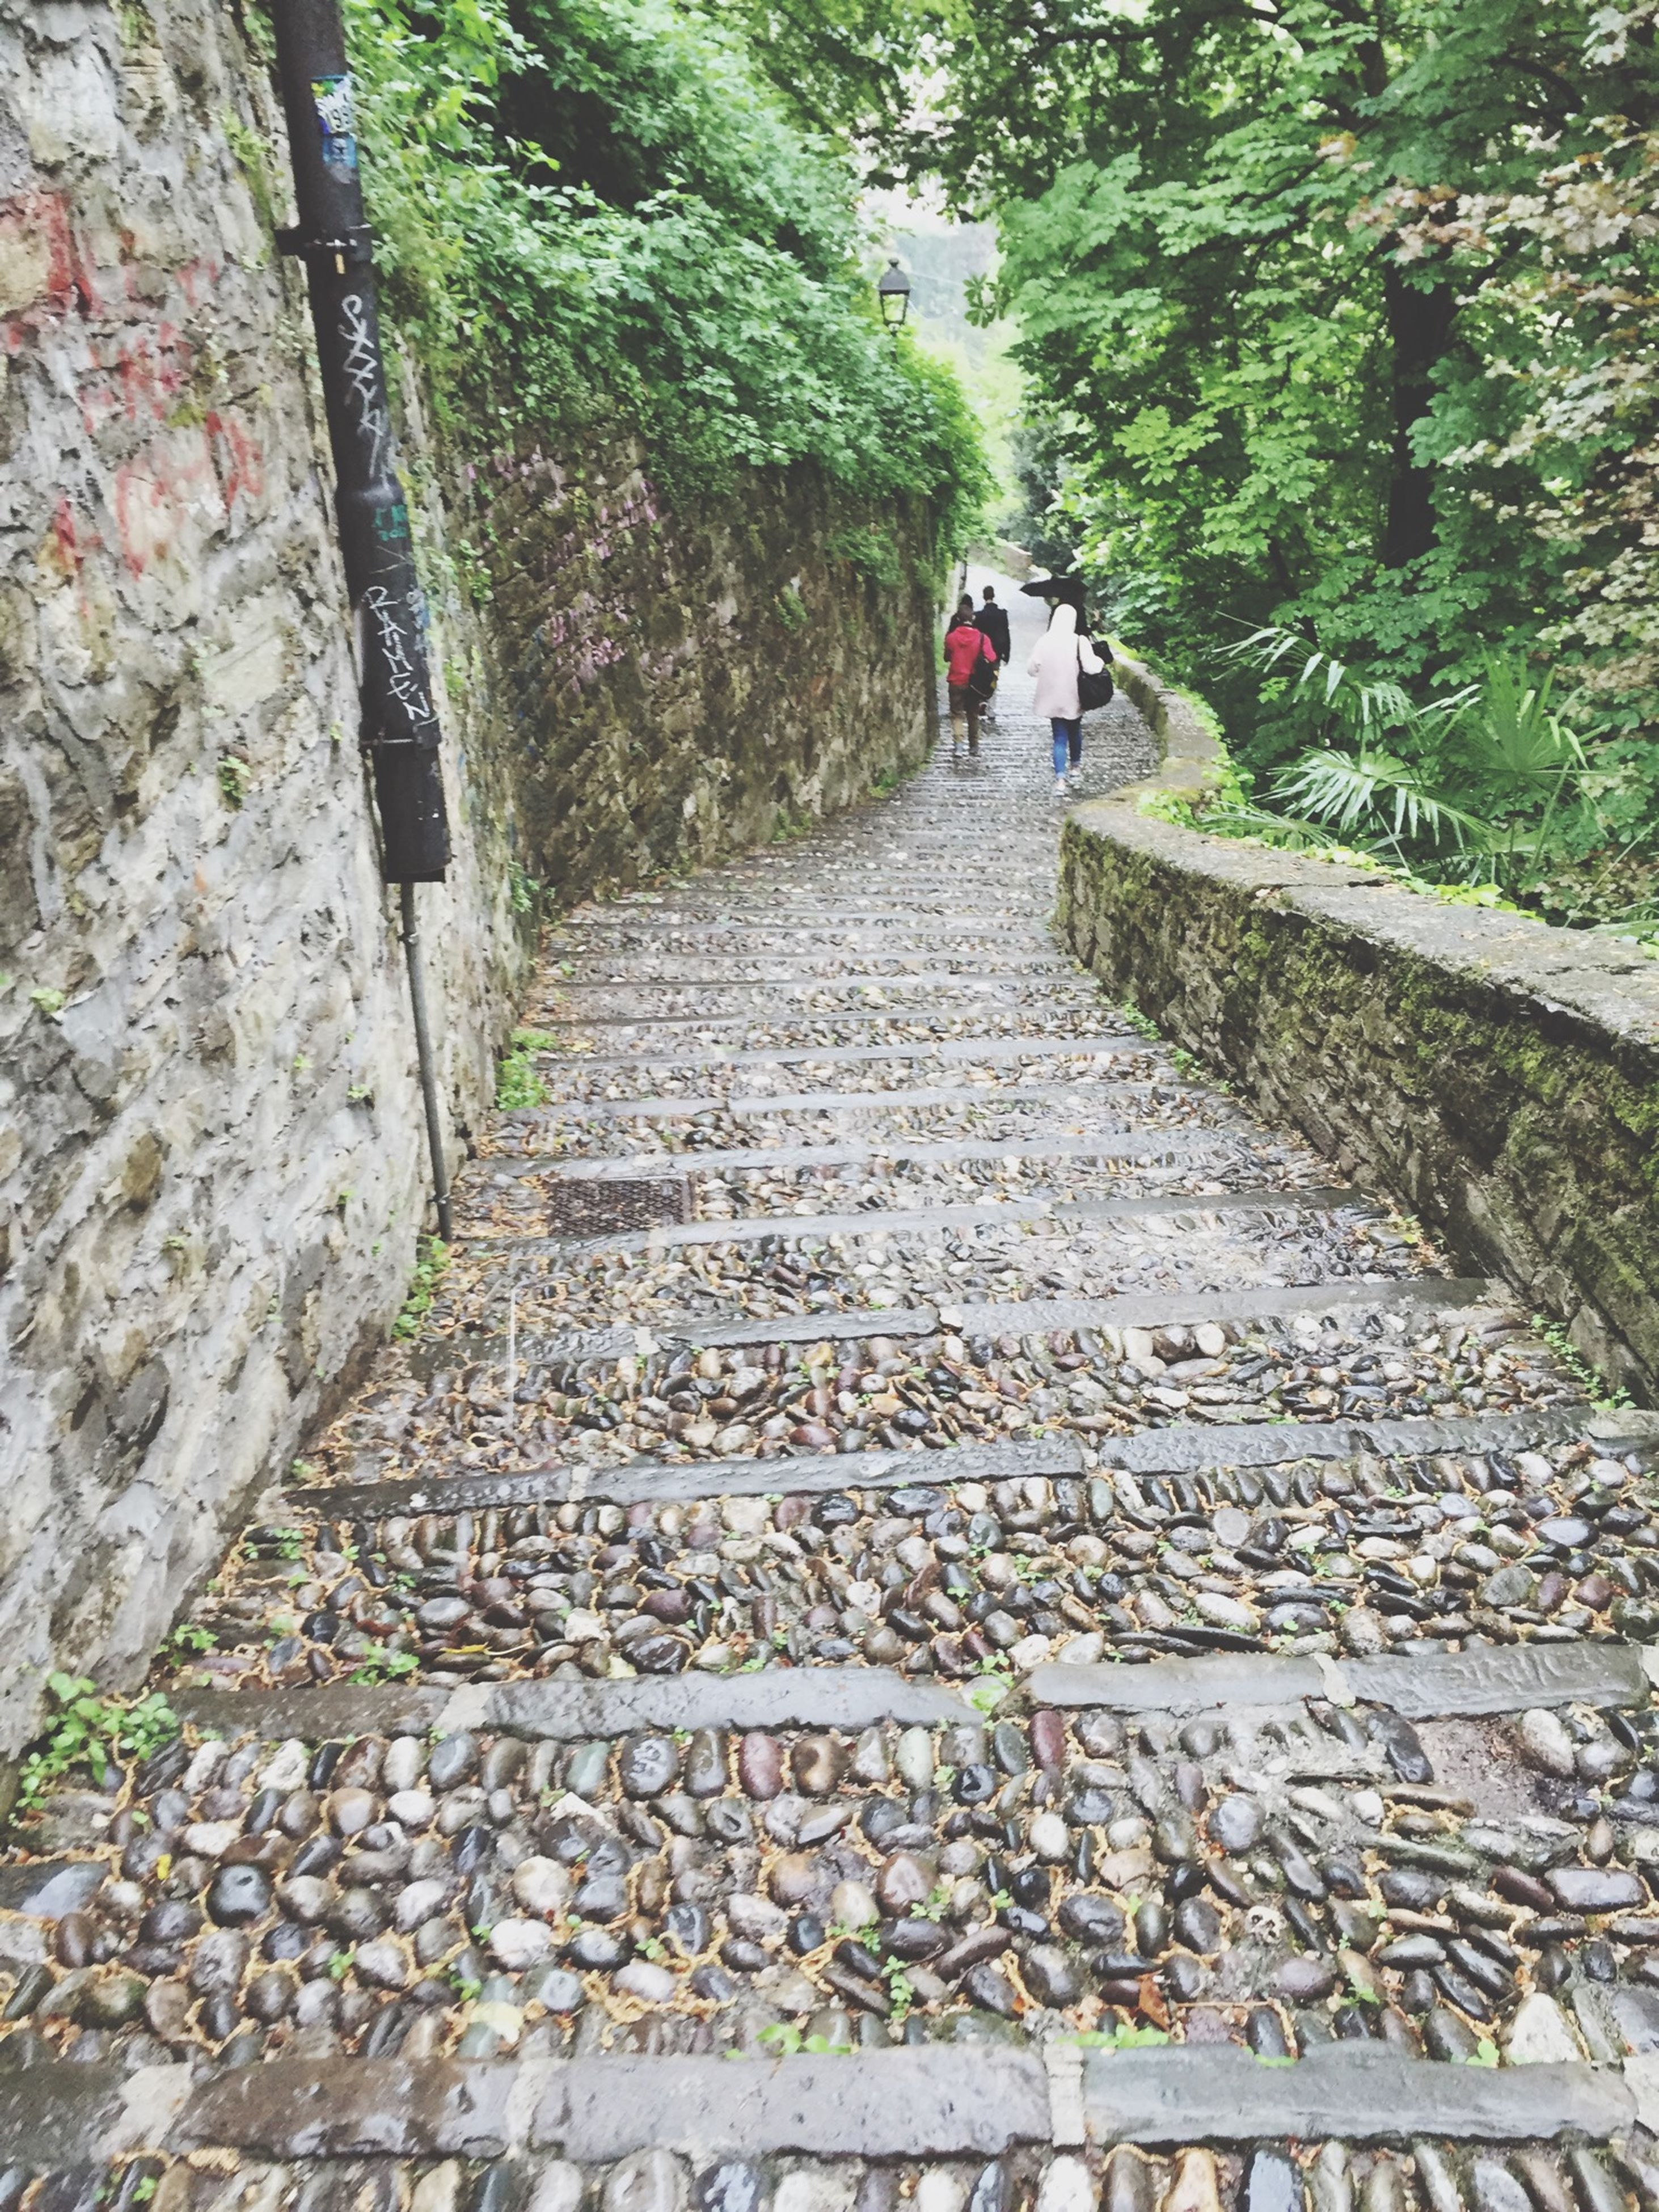 the way forward, steps, diminishing perspective, tree, steps and staircases, walking, vanishing point, footpath, lifestyles, men, walkway, leisure activity, person, day, pathway, rear view, outdoors, staircase